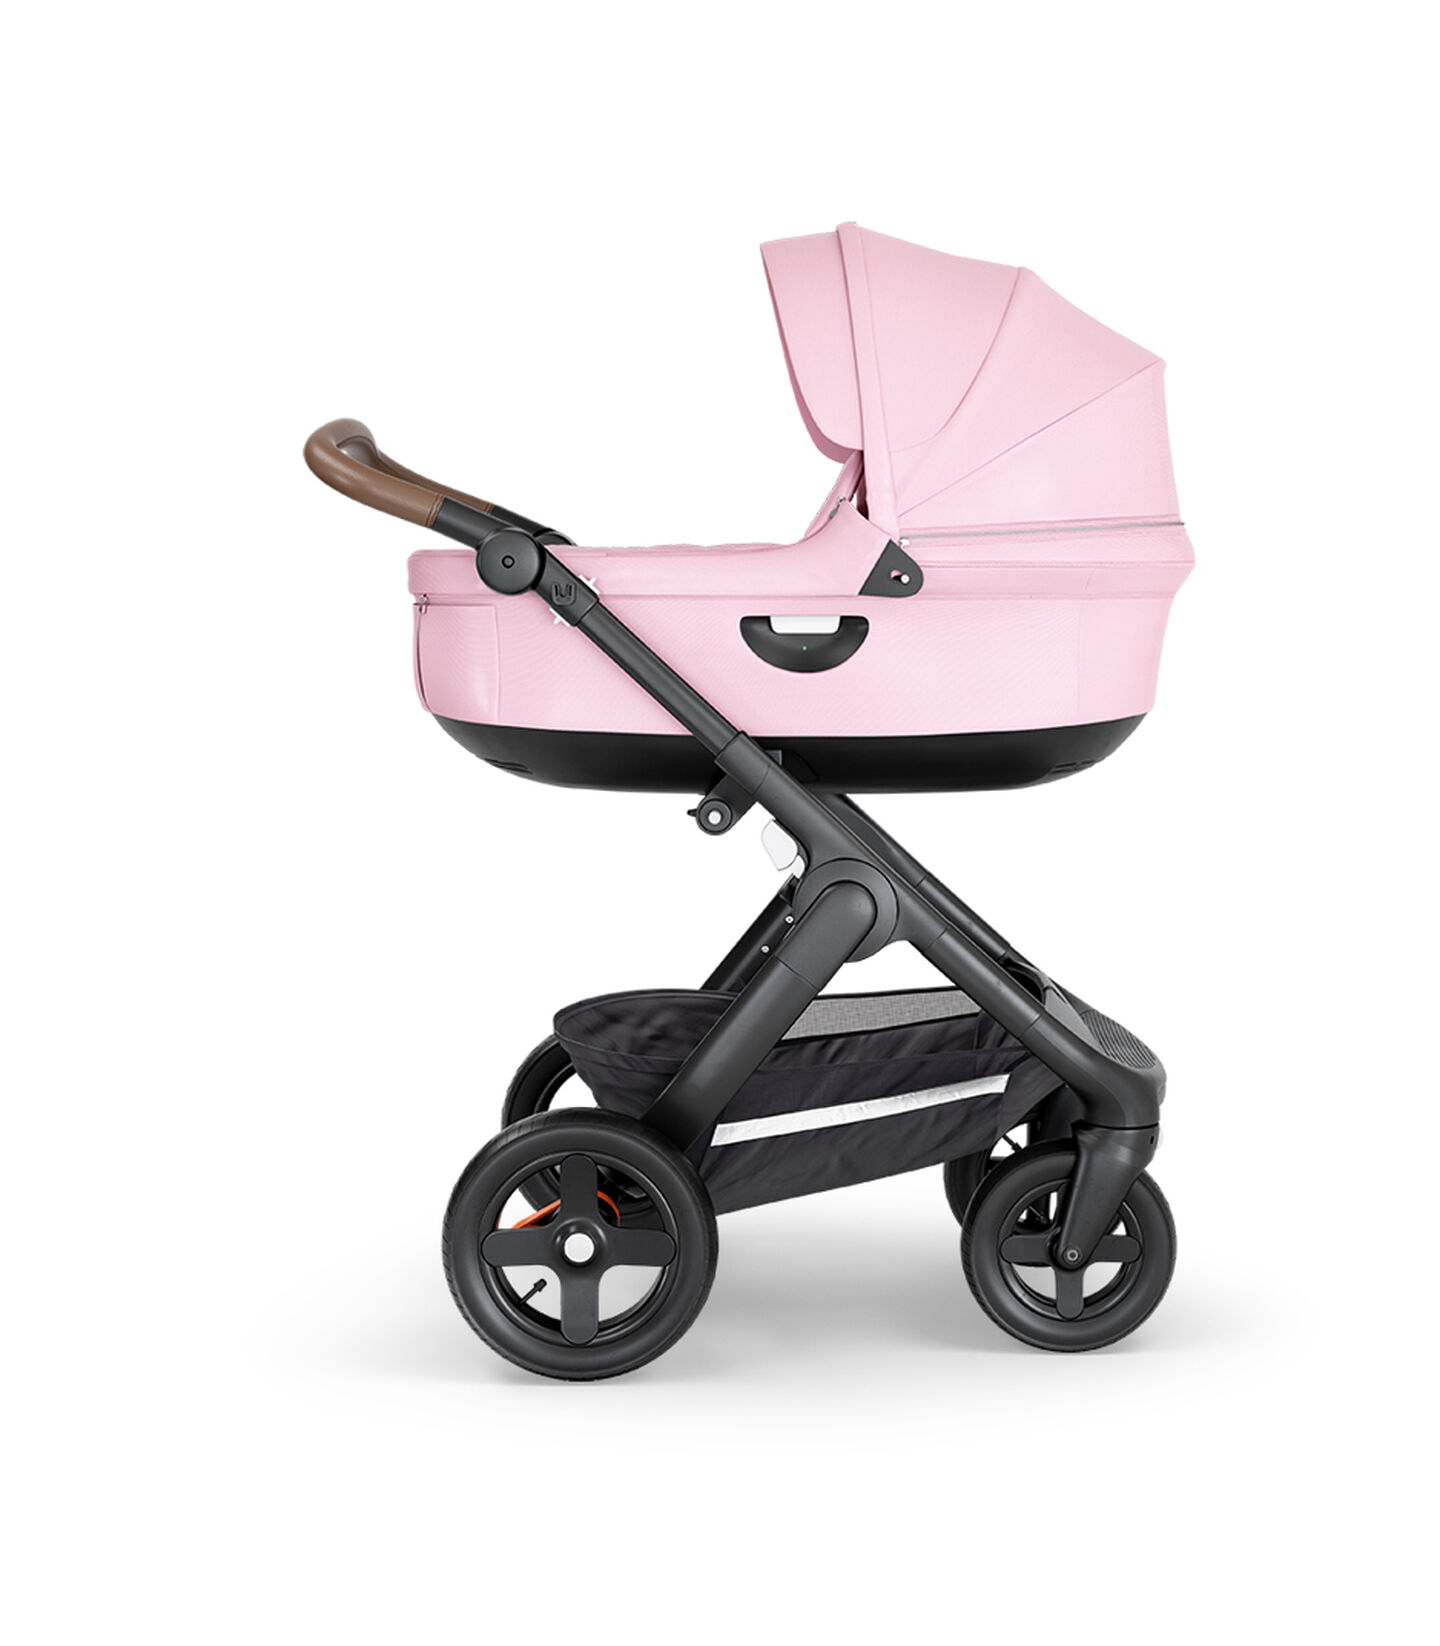 Stokke® Trailz™ with Black Chassis, Brown Leatherette and Terrain Wheels. Stokke® Stroller Carry Cot, Lotus Pink